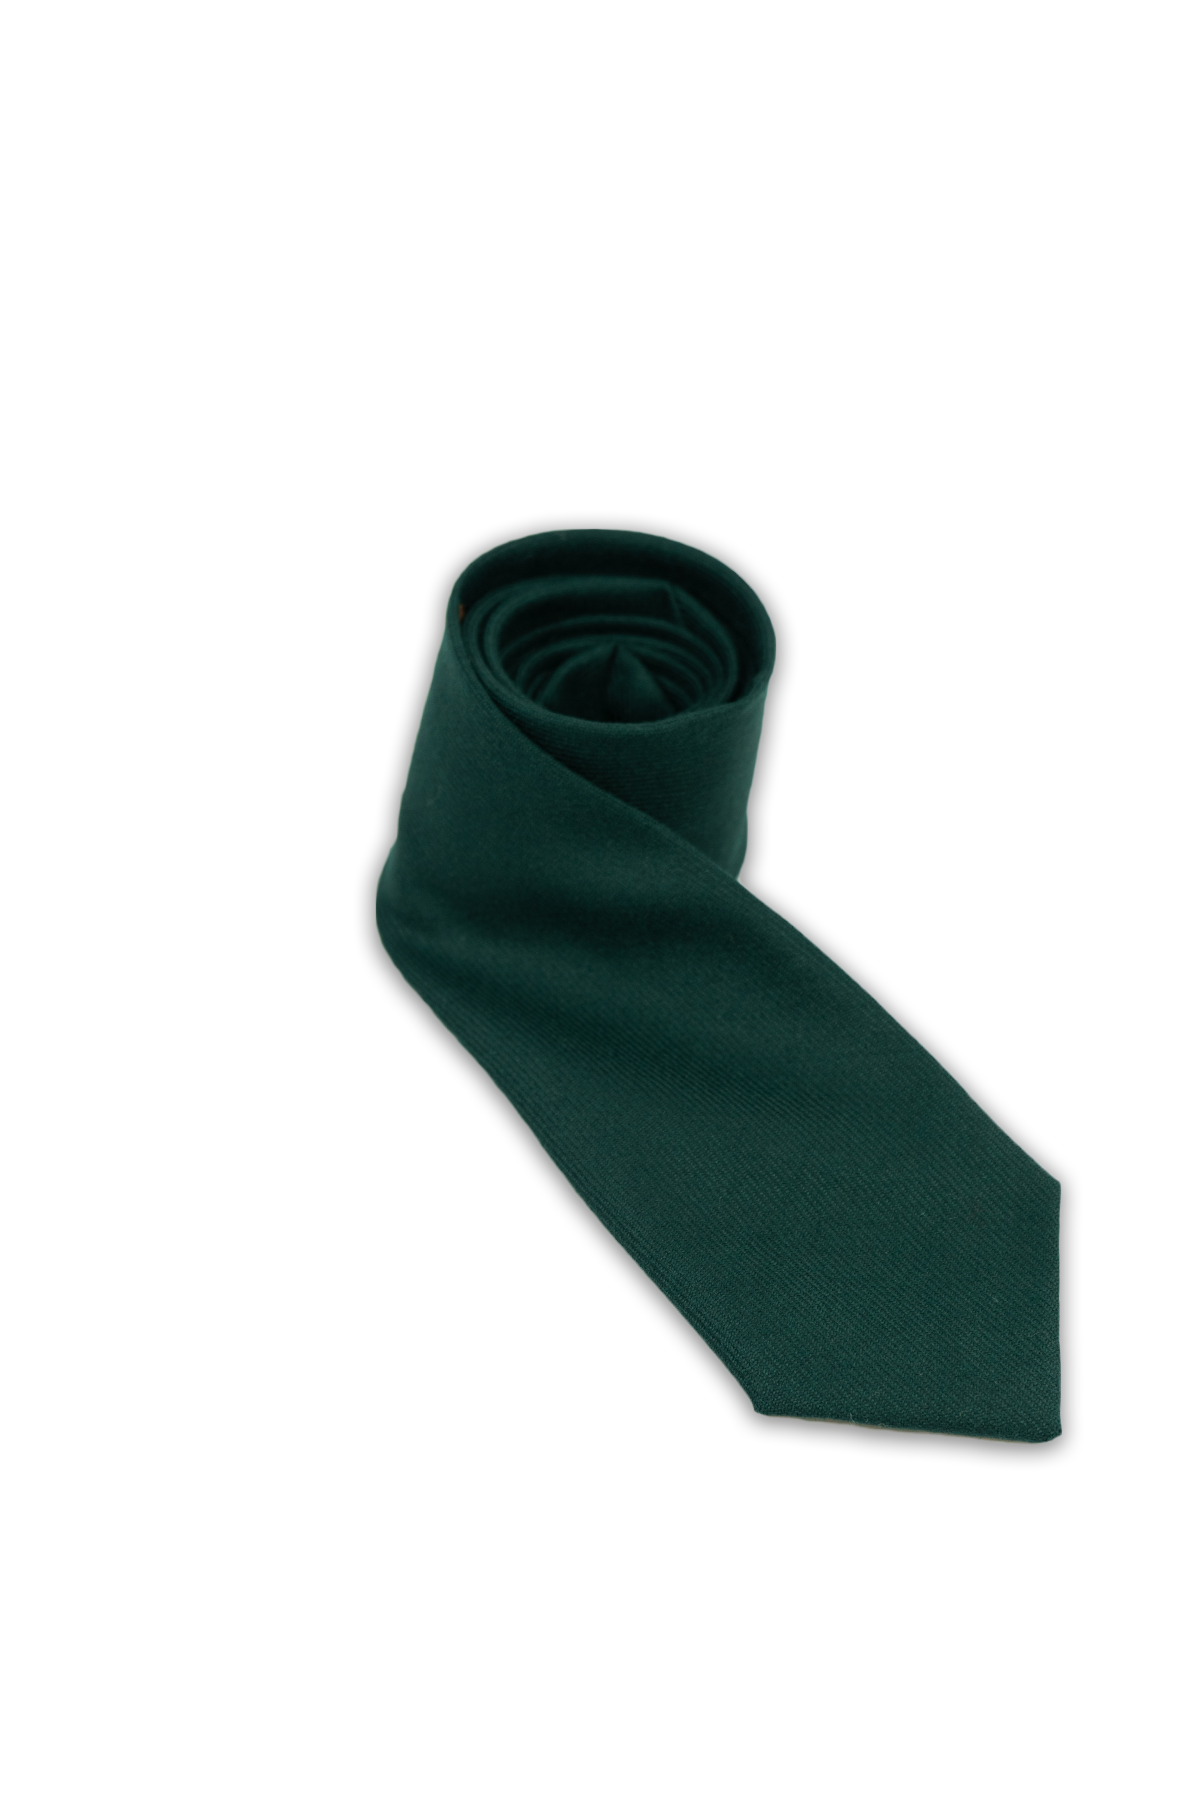 Bottle Green Hire Tie